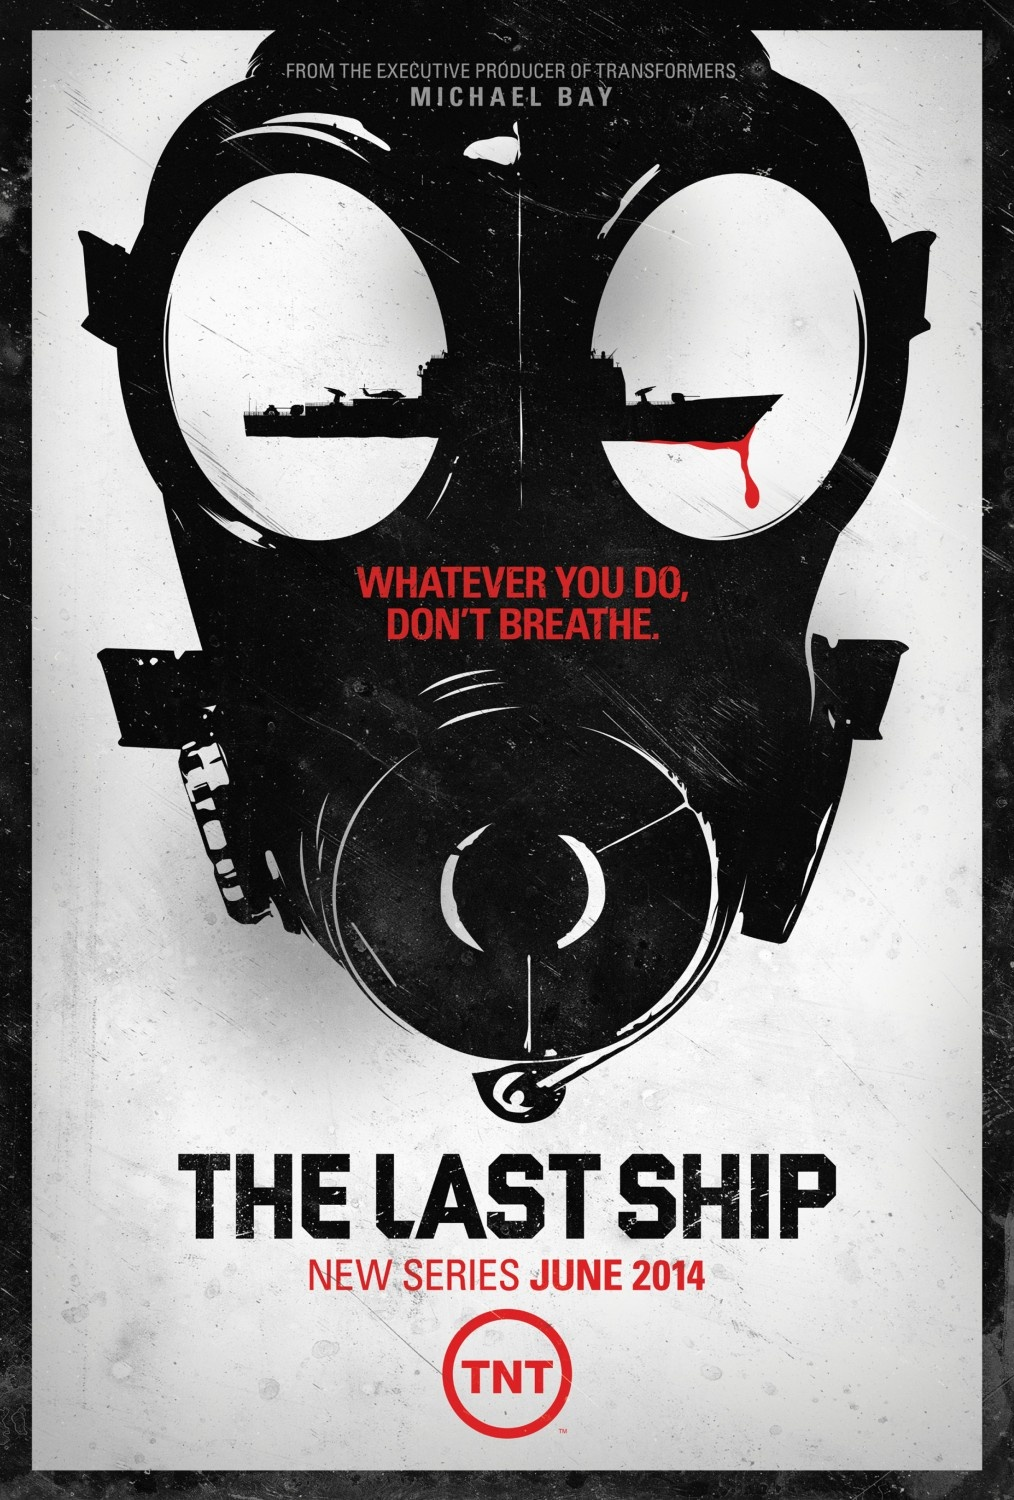 The Last Ship 2014 saison 1 en vostfr